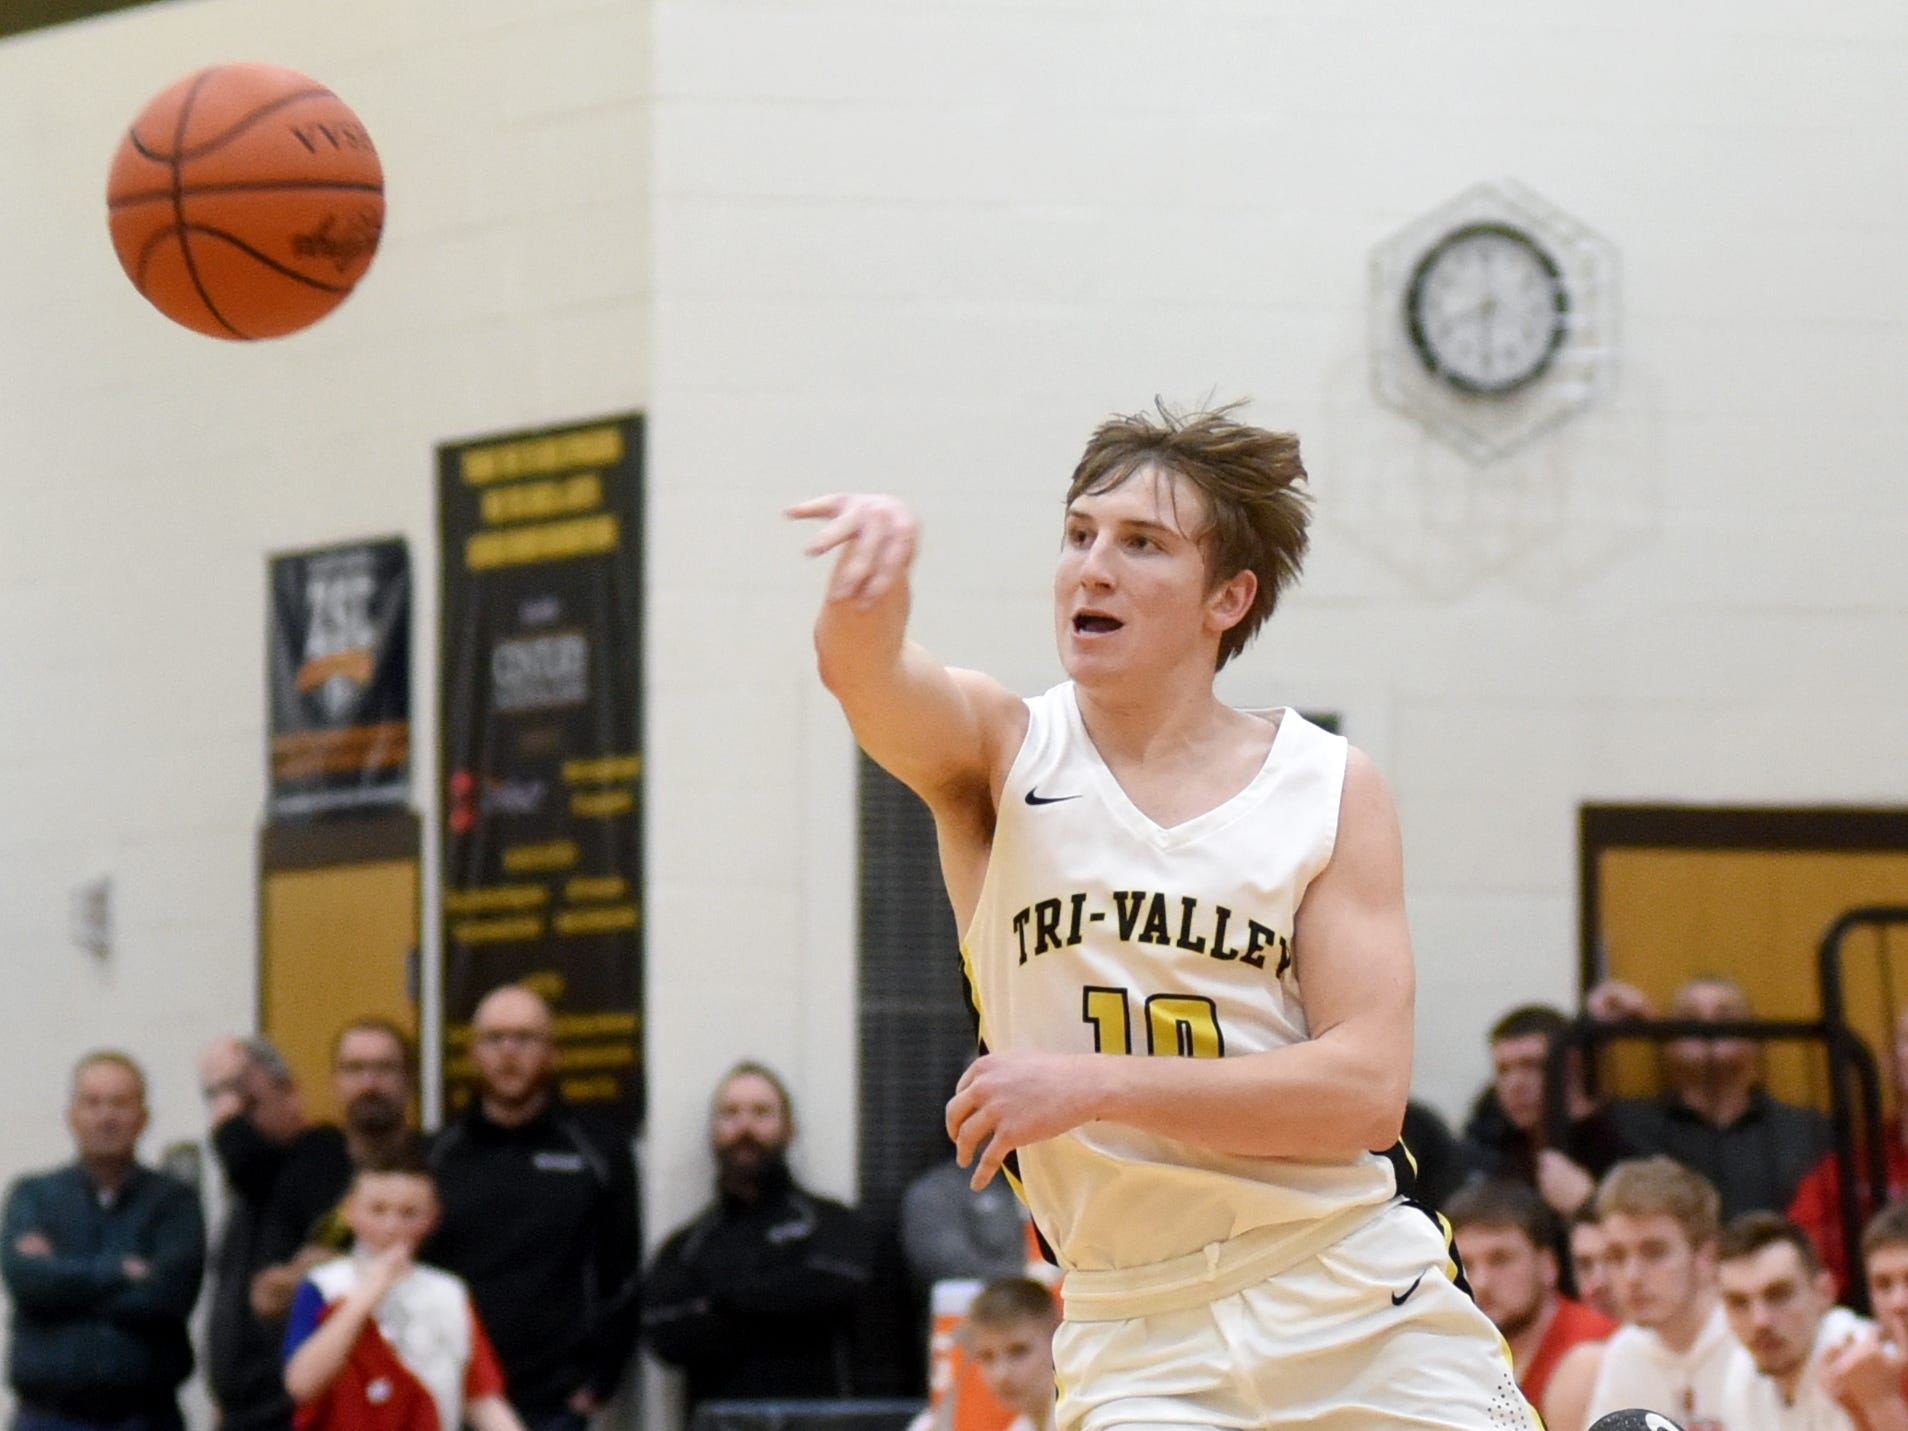 Jack Lyall, of Tri-Valley, whips a pass up court against Sheridan on Friday night in Dresden.